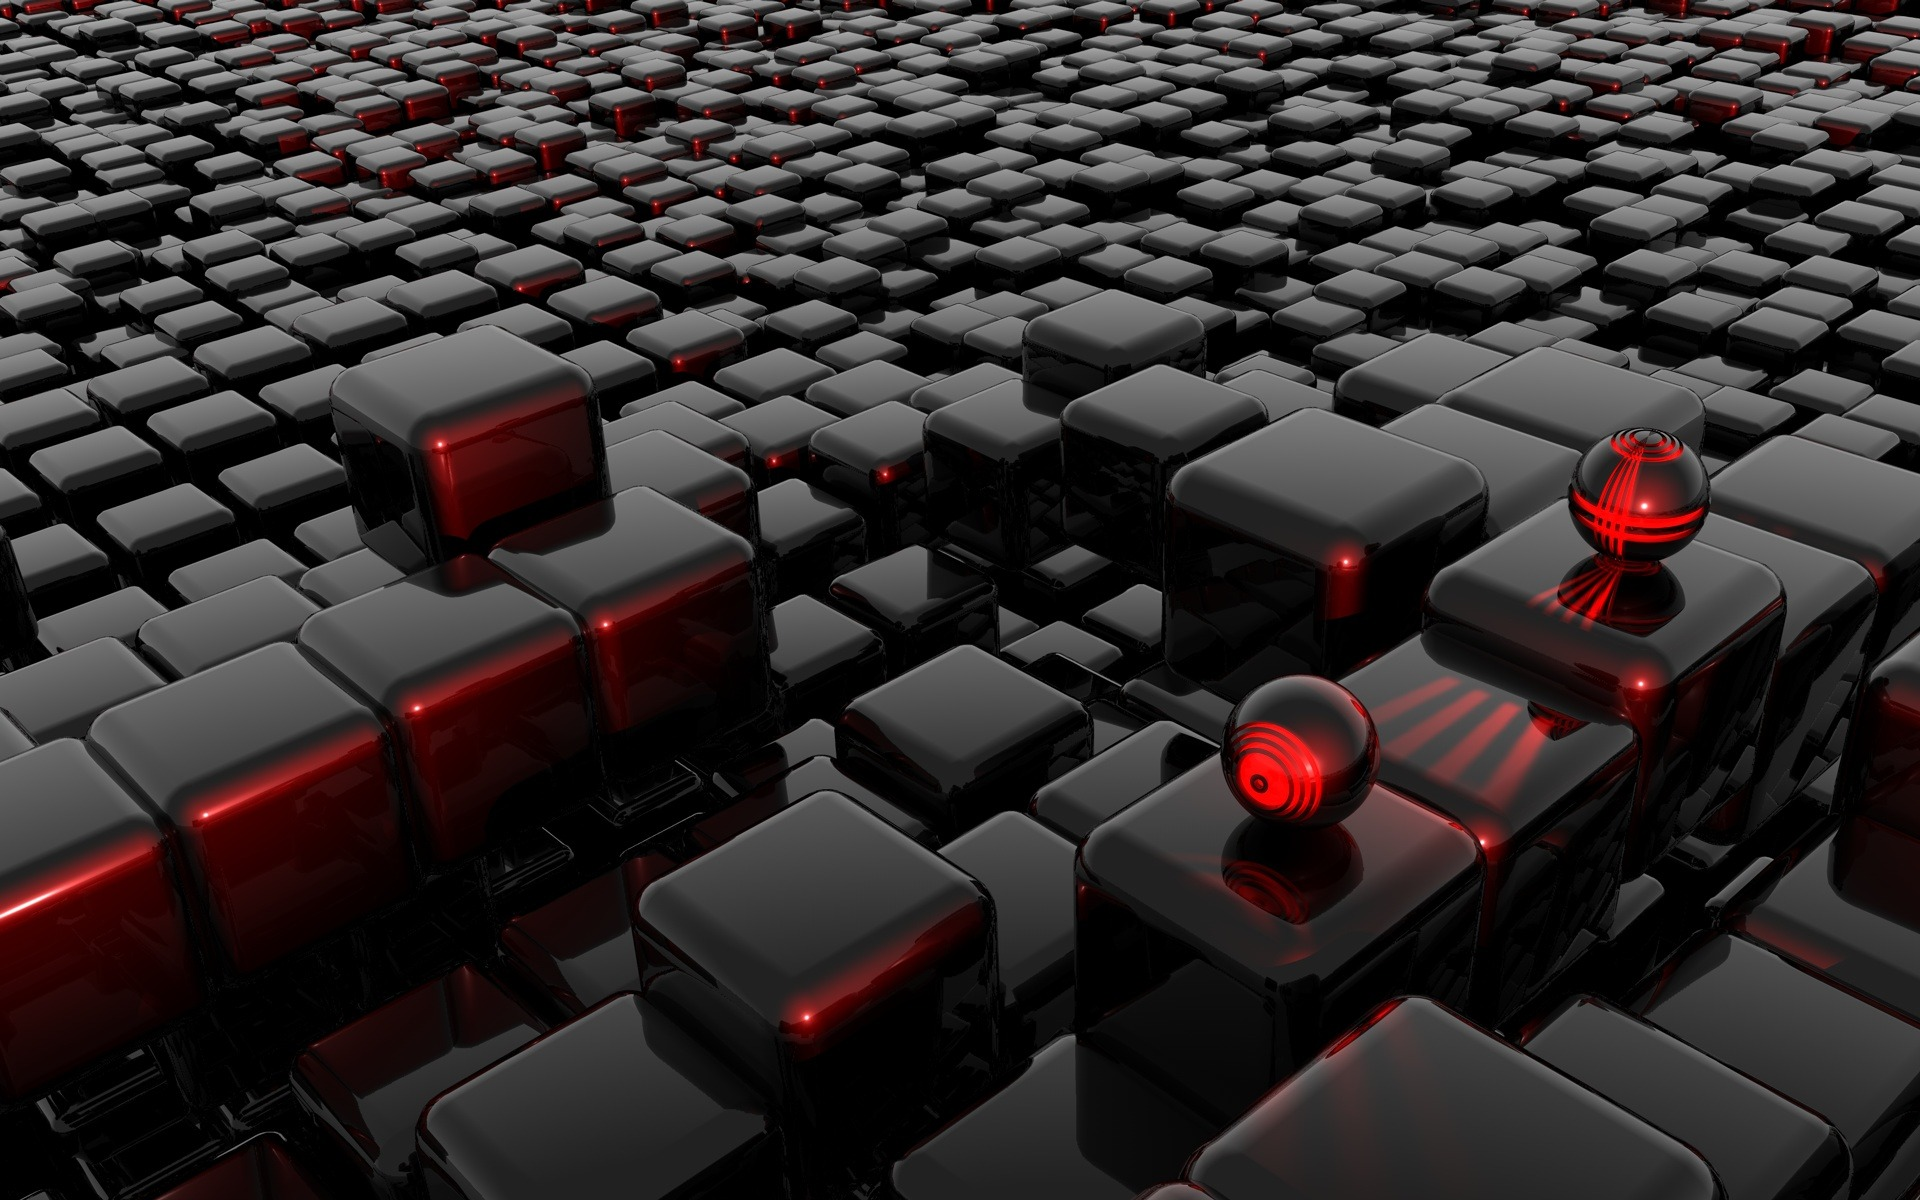 Cube Abstract Wallpaper